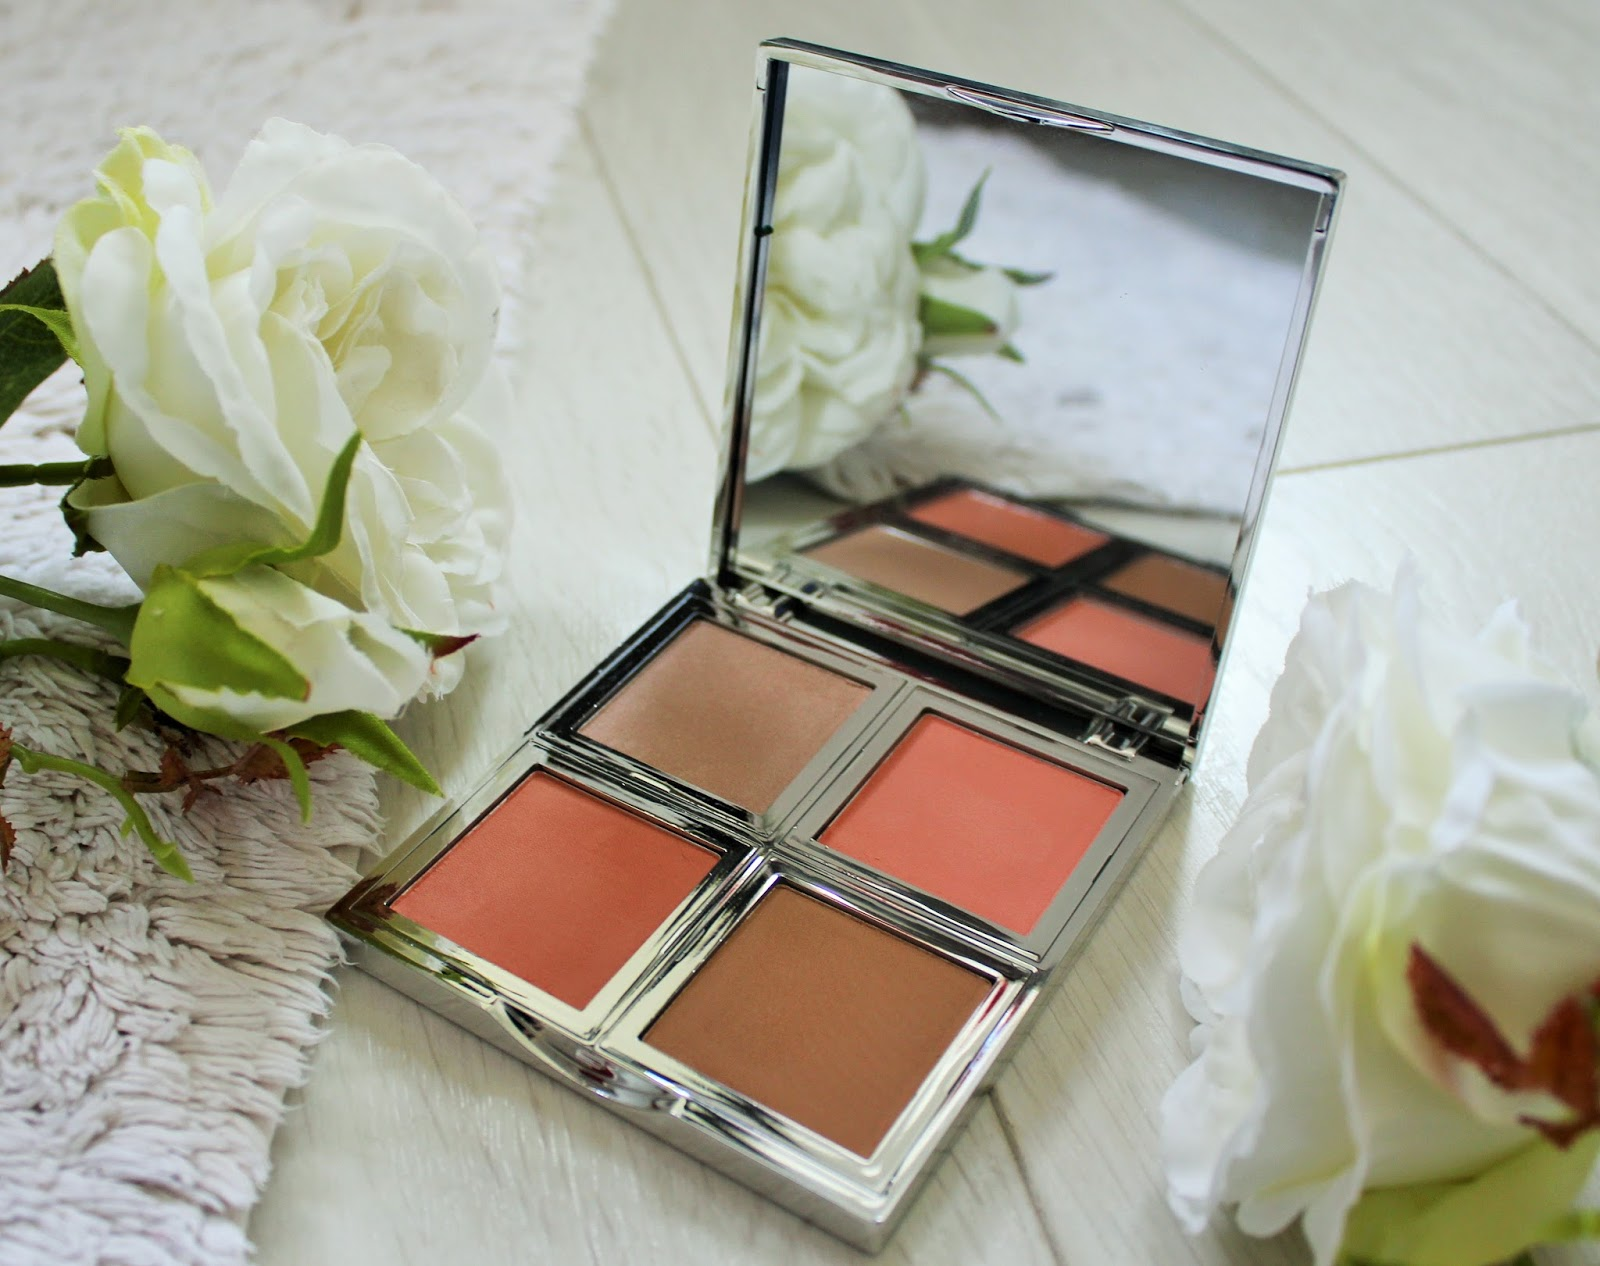 E.l.f. Cosmetics 2 - Natural Glow Face Palette